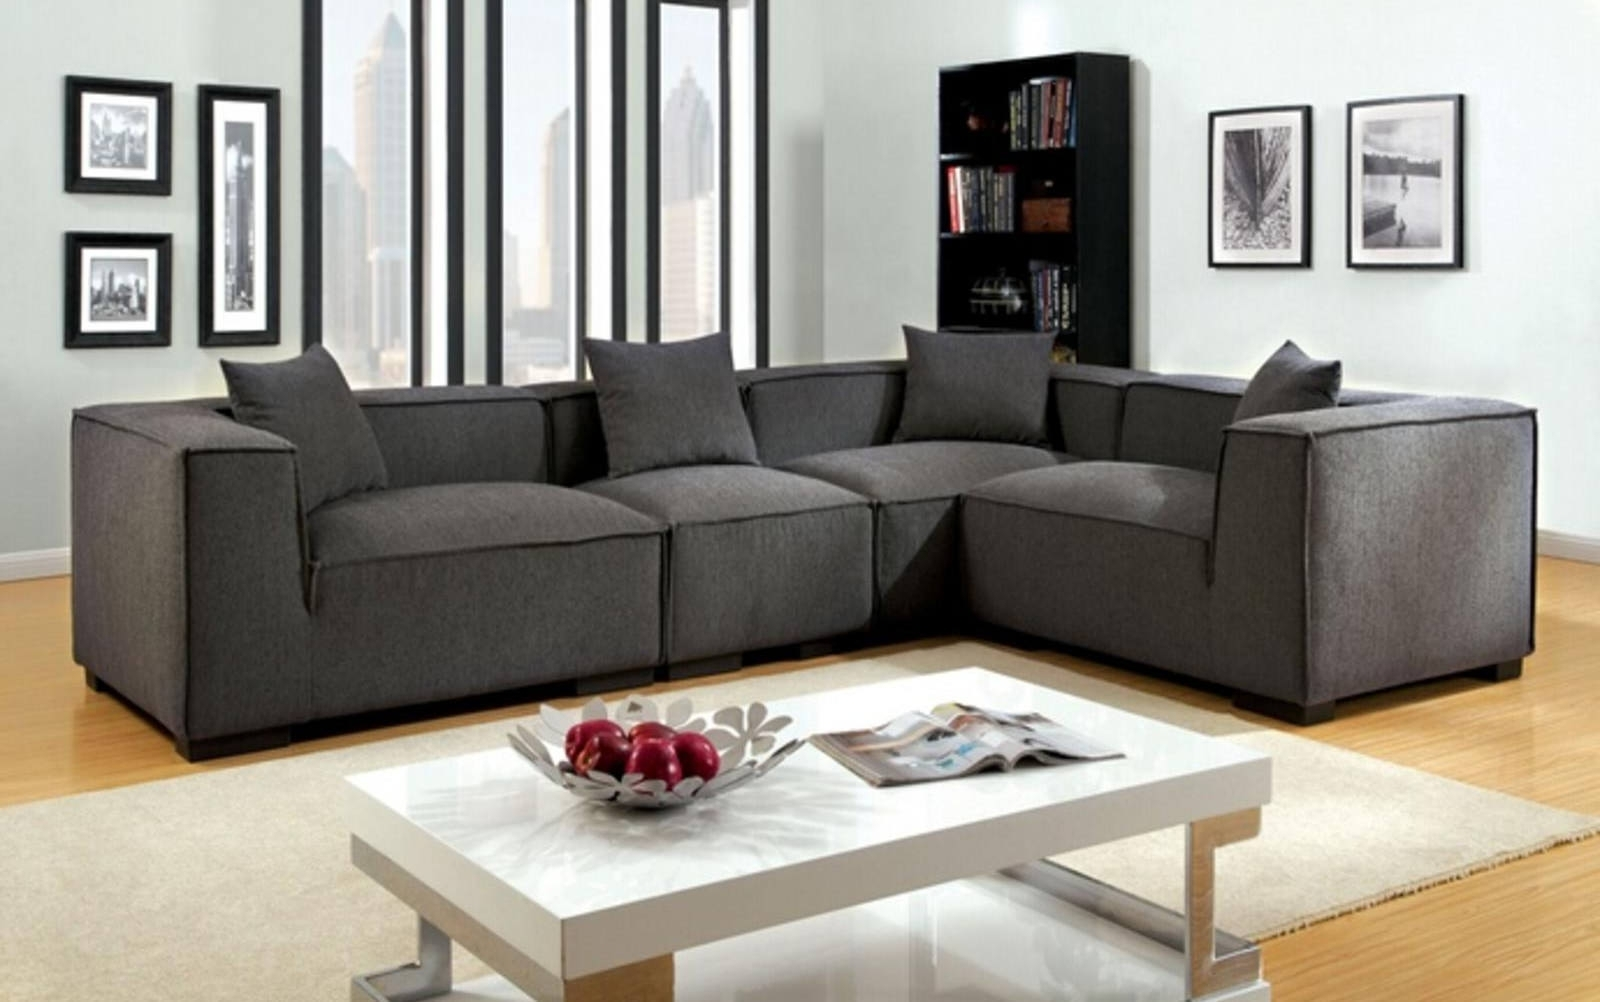 Design With Regard To Widely Used Structube Sectional Sofas (View 4 of 15)